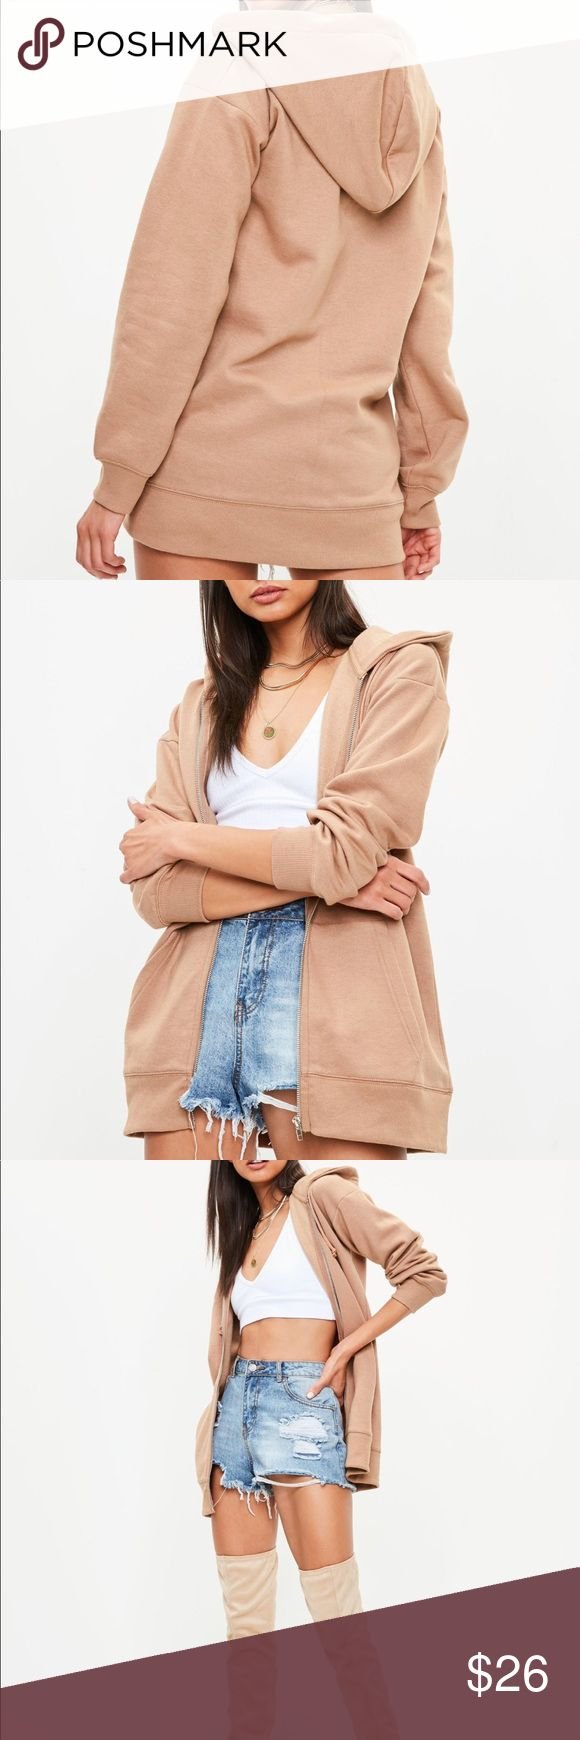 """NWT Missguided Camel Nude Tan Long Hoodie Brown S NWT Missguided Camel Tan Nude Hoodie Longline S Yeezy Kim Kardashian Earthtone Neutral  Brown longline hoodie with front pockets, long sleeves, ribbed hems and front zip fastening. Regular fit.   60% Polyester, 40% Cotton   Approx length: 70 cm/28"""" (based on a UK size S sample)  Brand new item. New with tags and plastic packaging.  Happy to bundle.   Smoke-free storage space. No flaws to note. Missguided Tops Sweatshirts & Hoodies"""